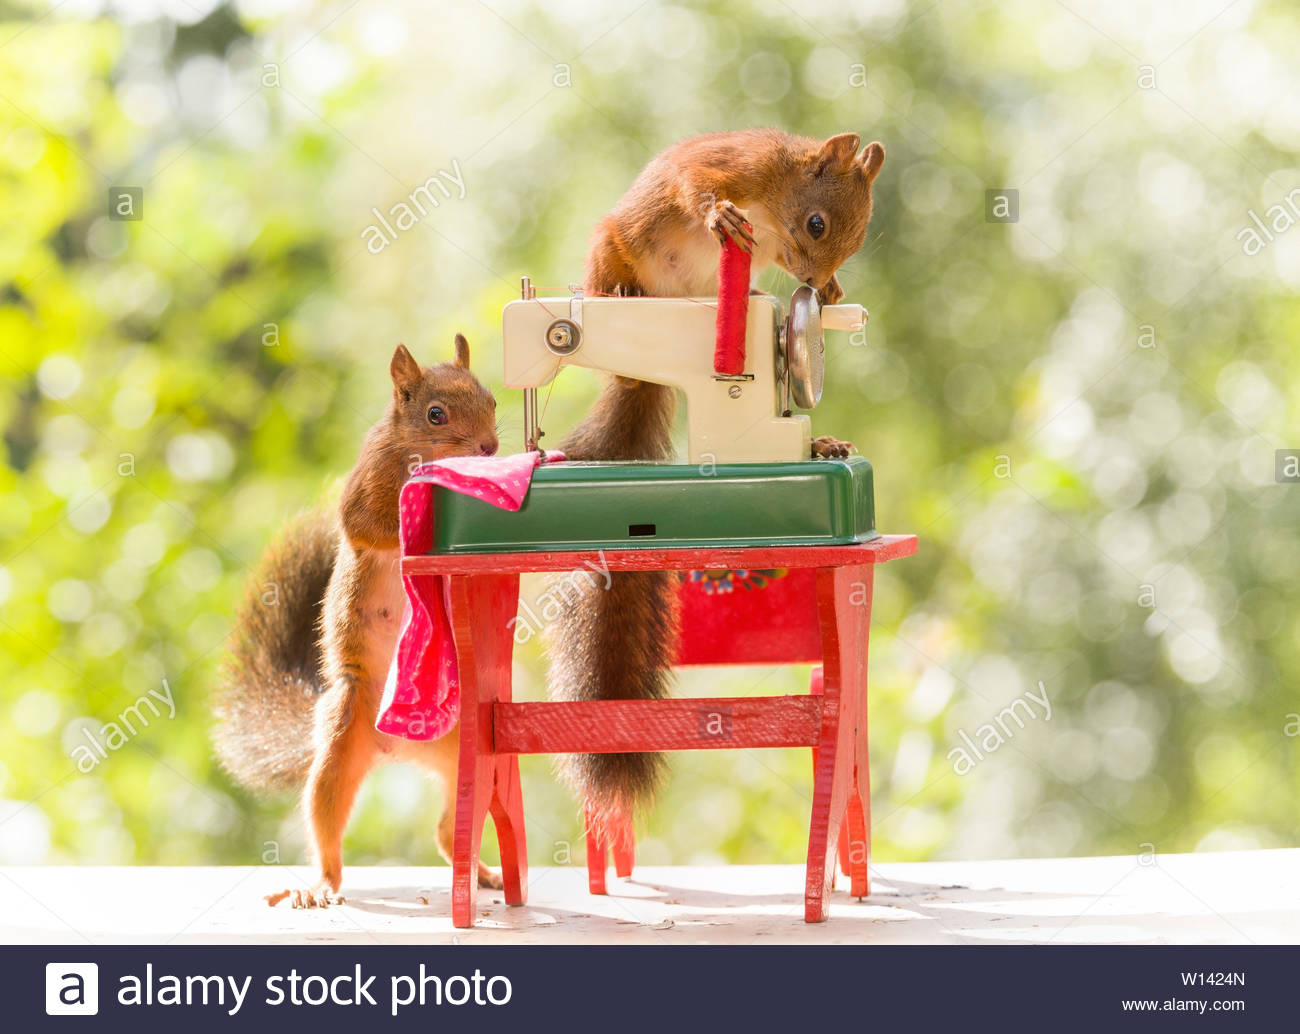 red squirresl are sewing at a table - Stock Image